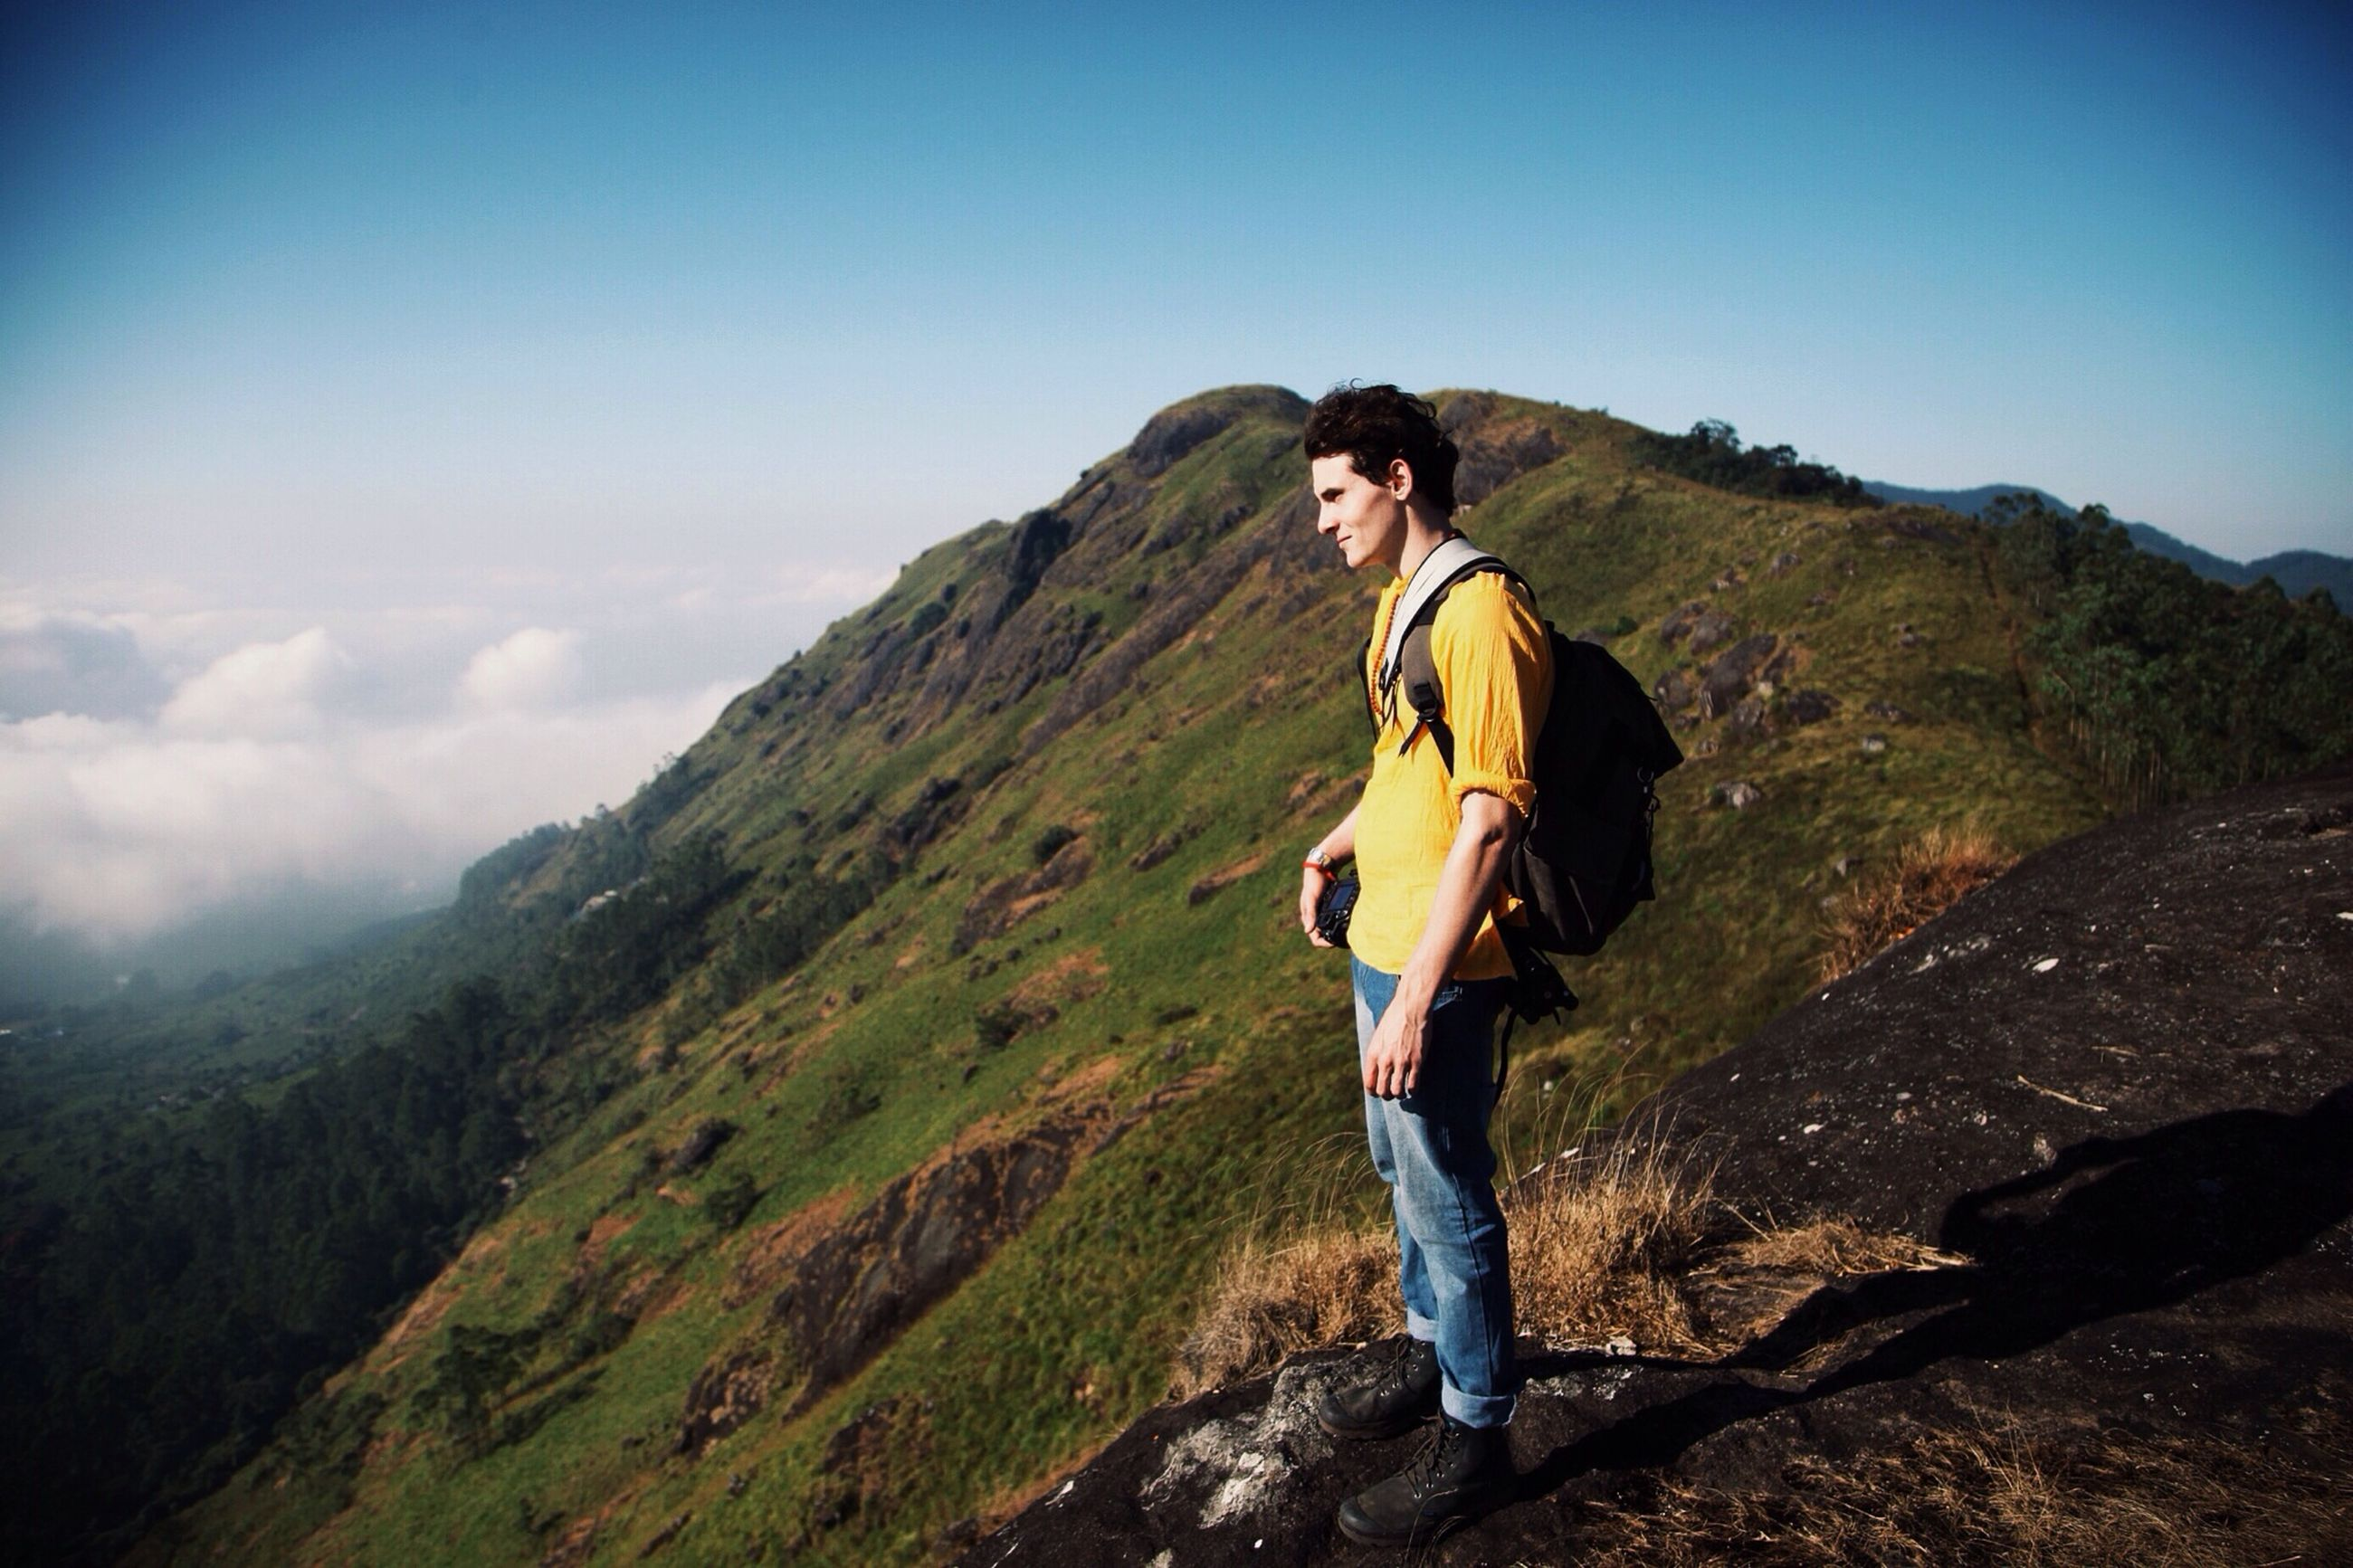 young adult, casual clothing, lifestyles, mountain, full length, leisure activity, standing, person, young women, sky, portrait, front view, looking at camera, mountain range, landscape, tranquility, tranquil scene